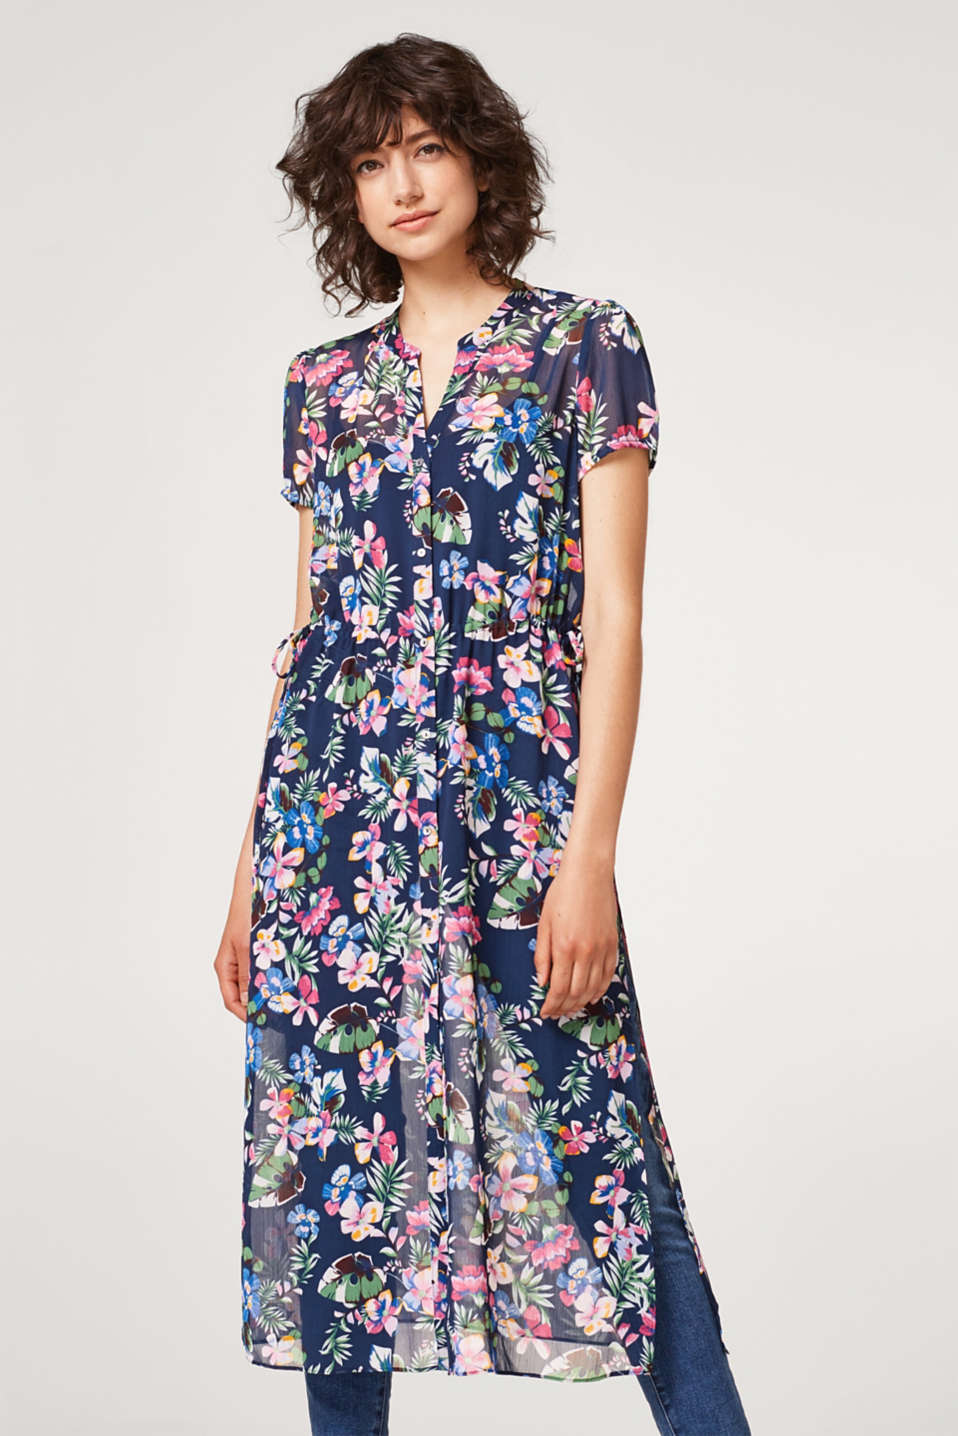 Esprit - Sheer chiffon dress with a floral pattern